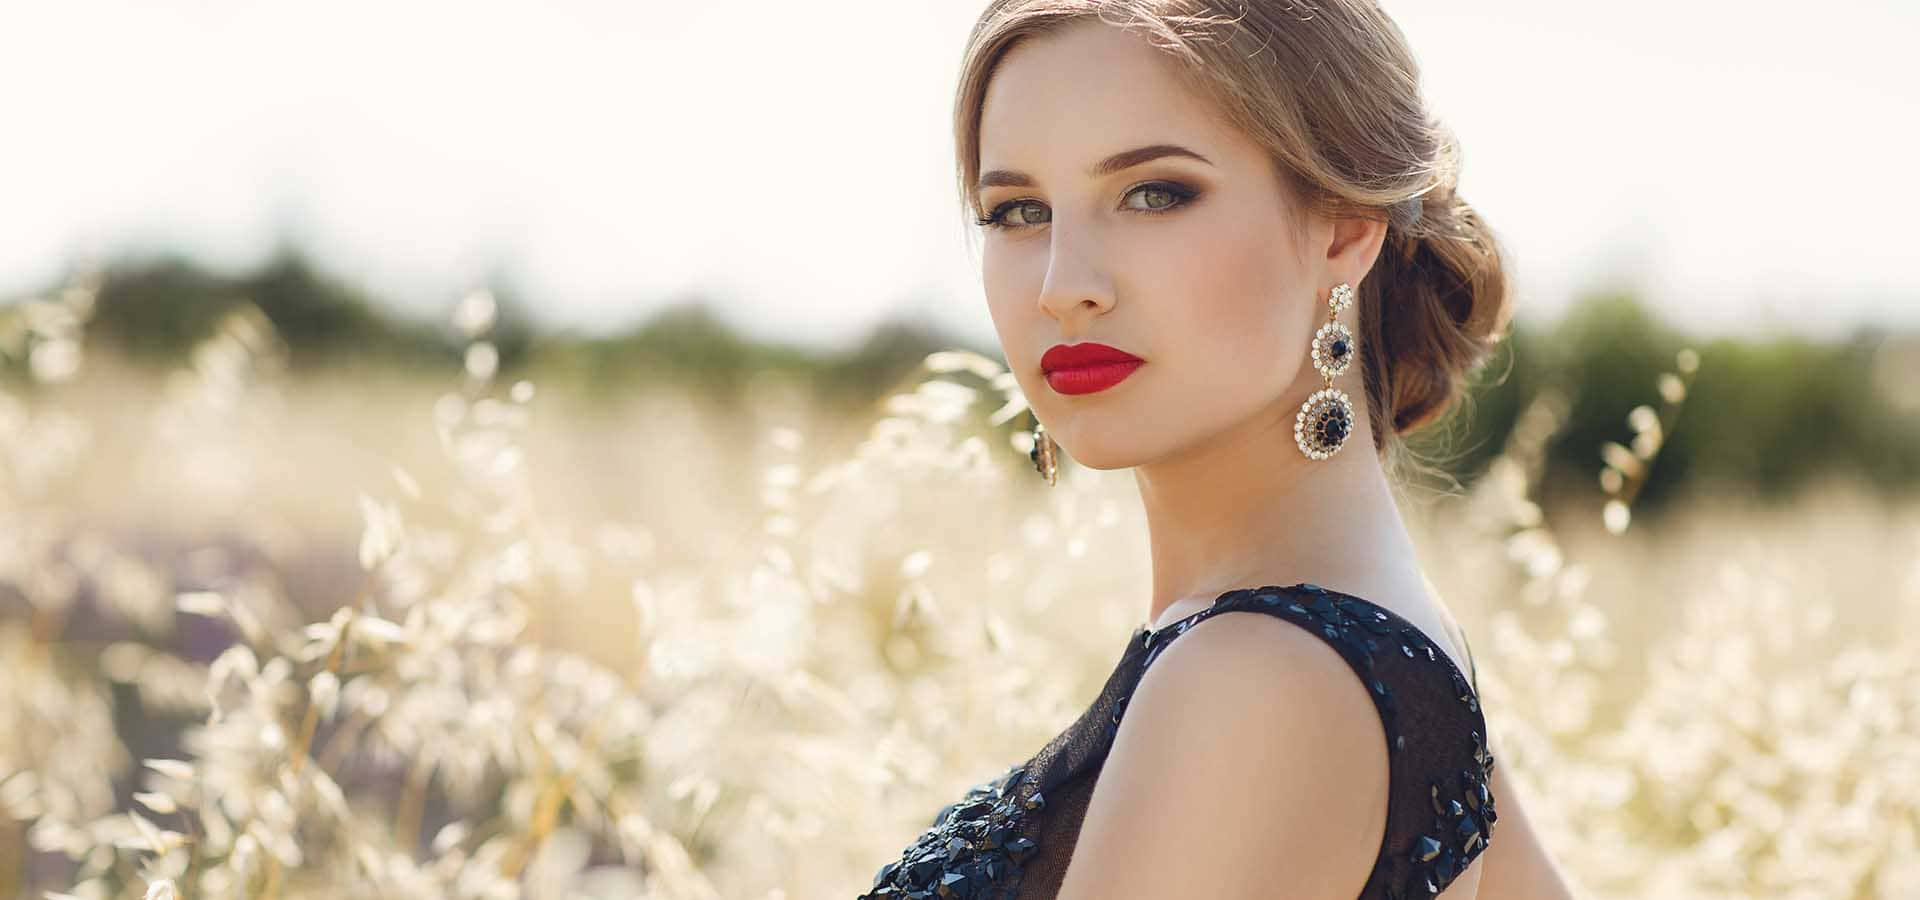 Brown-eyed brunette with bright red lipstick on her lips, stylish makeup, elegant fashionable hair style in the ears wearing earrings,wearing a black dress,posing in a meadow outside the city in the summer outdoors.